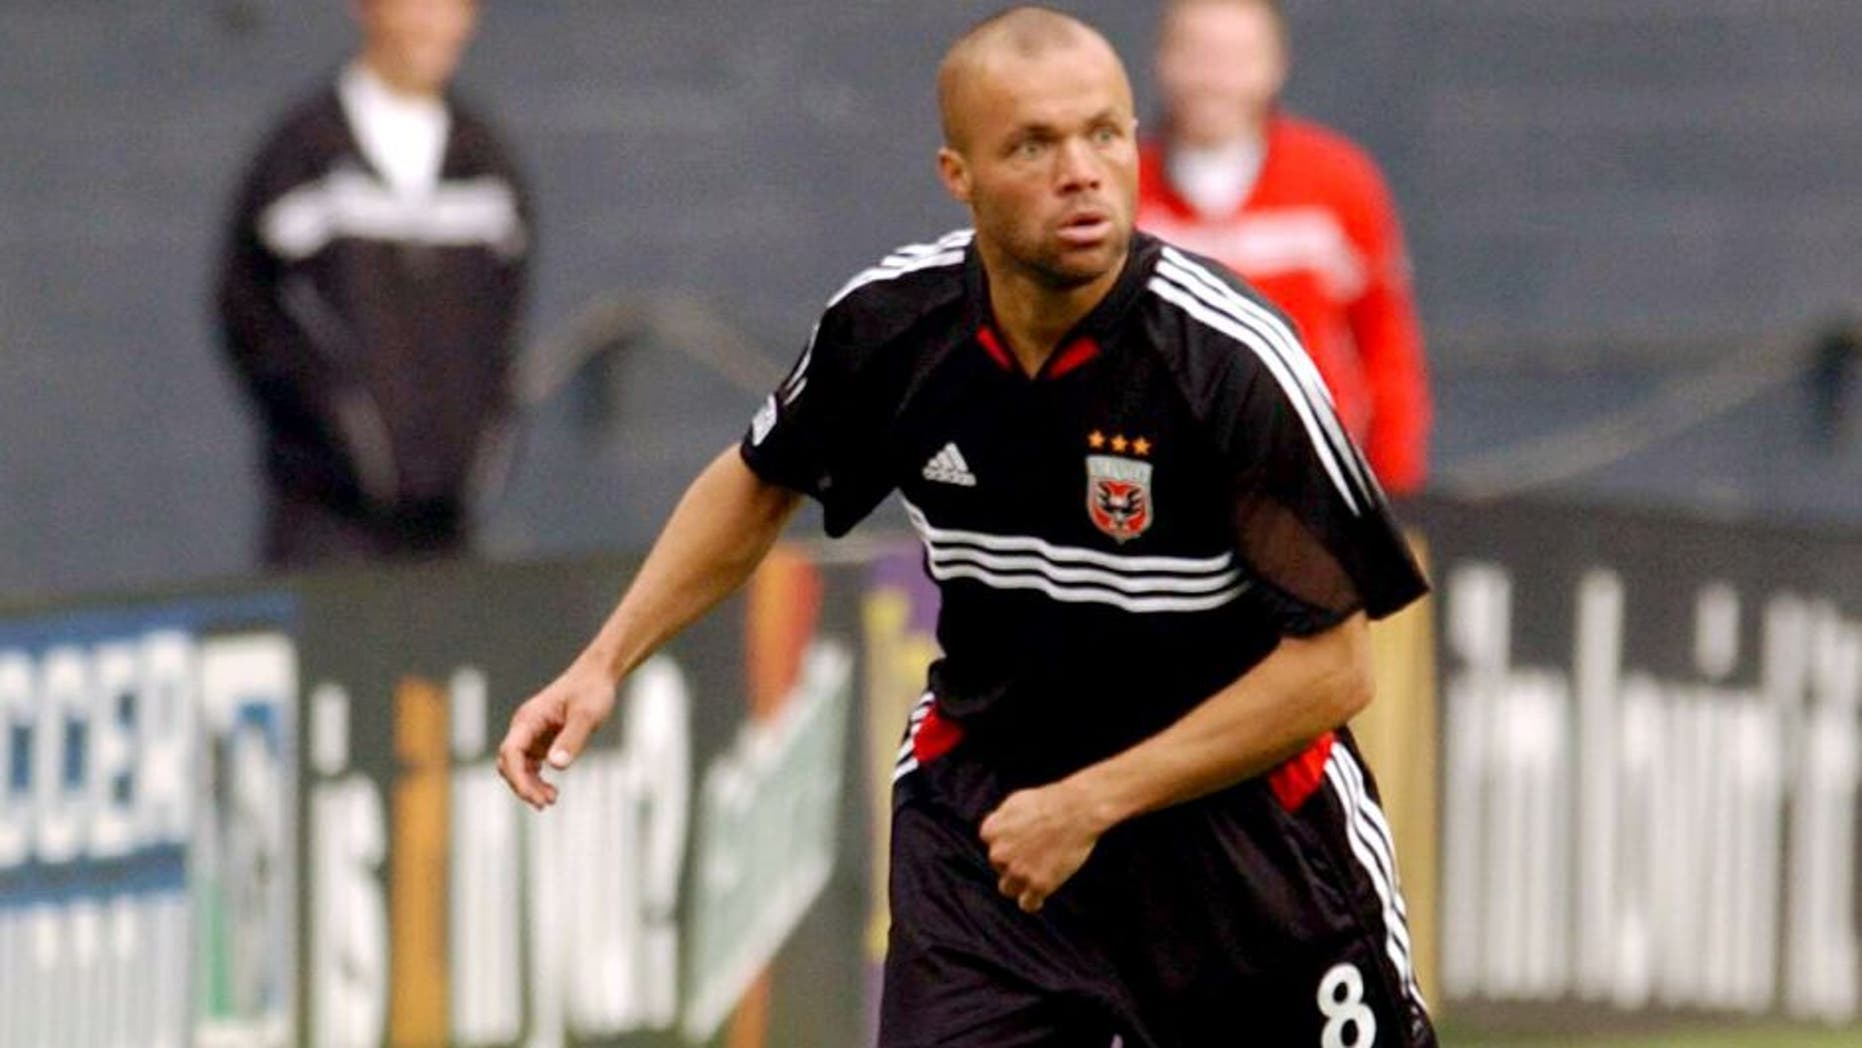 Earnie Stewart #8 of D.C. United looks to kick the ball against the San Jose Earthquakes in Washington D.C. on April 3, 2004. D.C. United defeated the Earthquakes 2-1. (Photo by Joe Murphy/MLSNETImages)